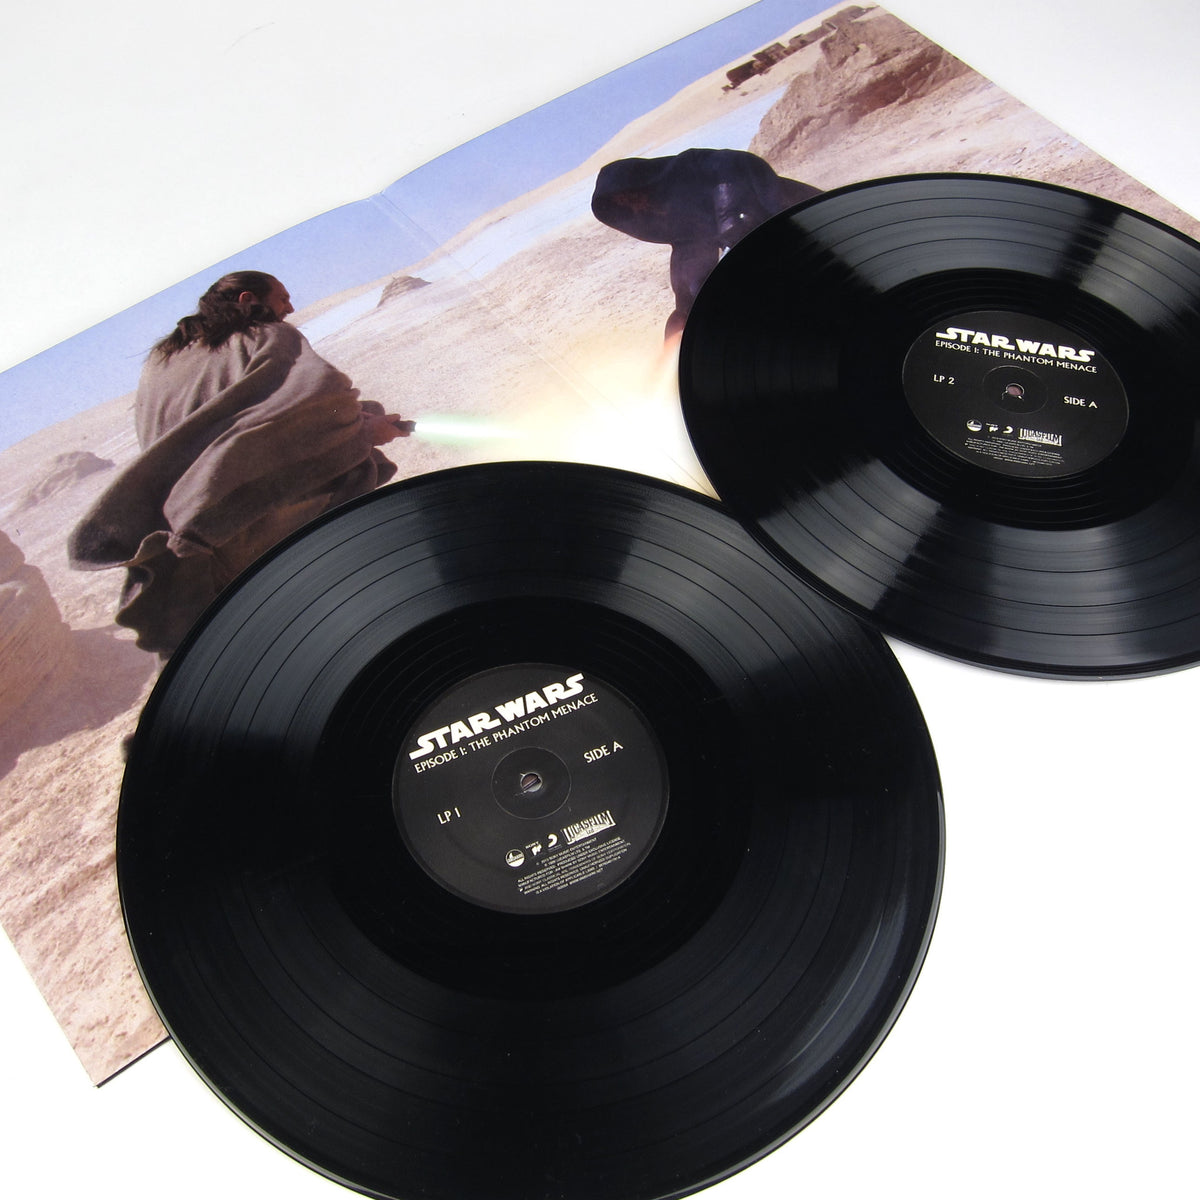 John Williams: Star Wars Episode 1 - The Phantom Menace Soundtrack Vinyl 2LP detail